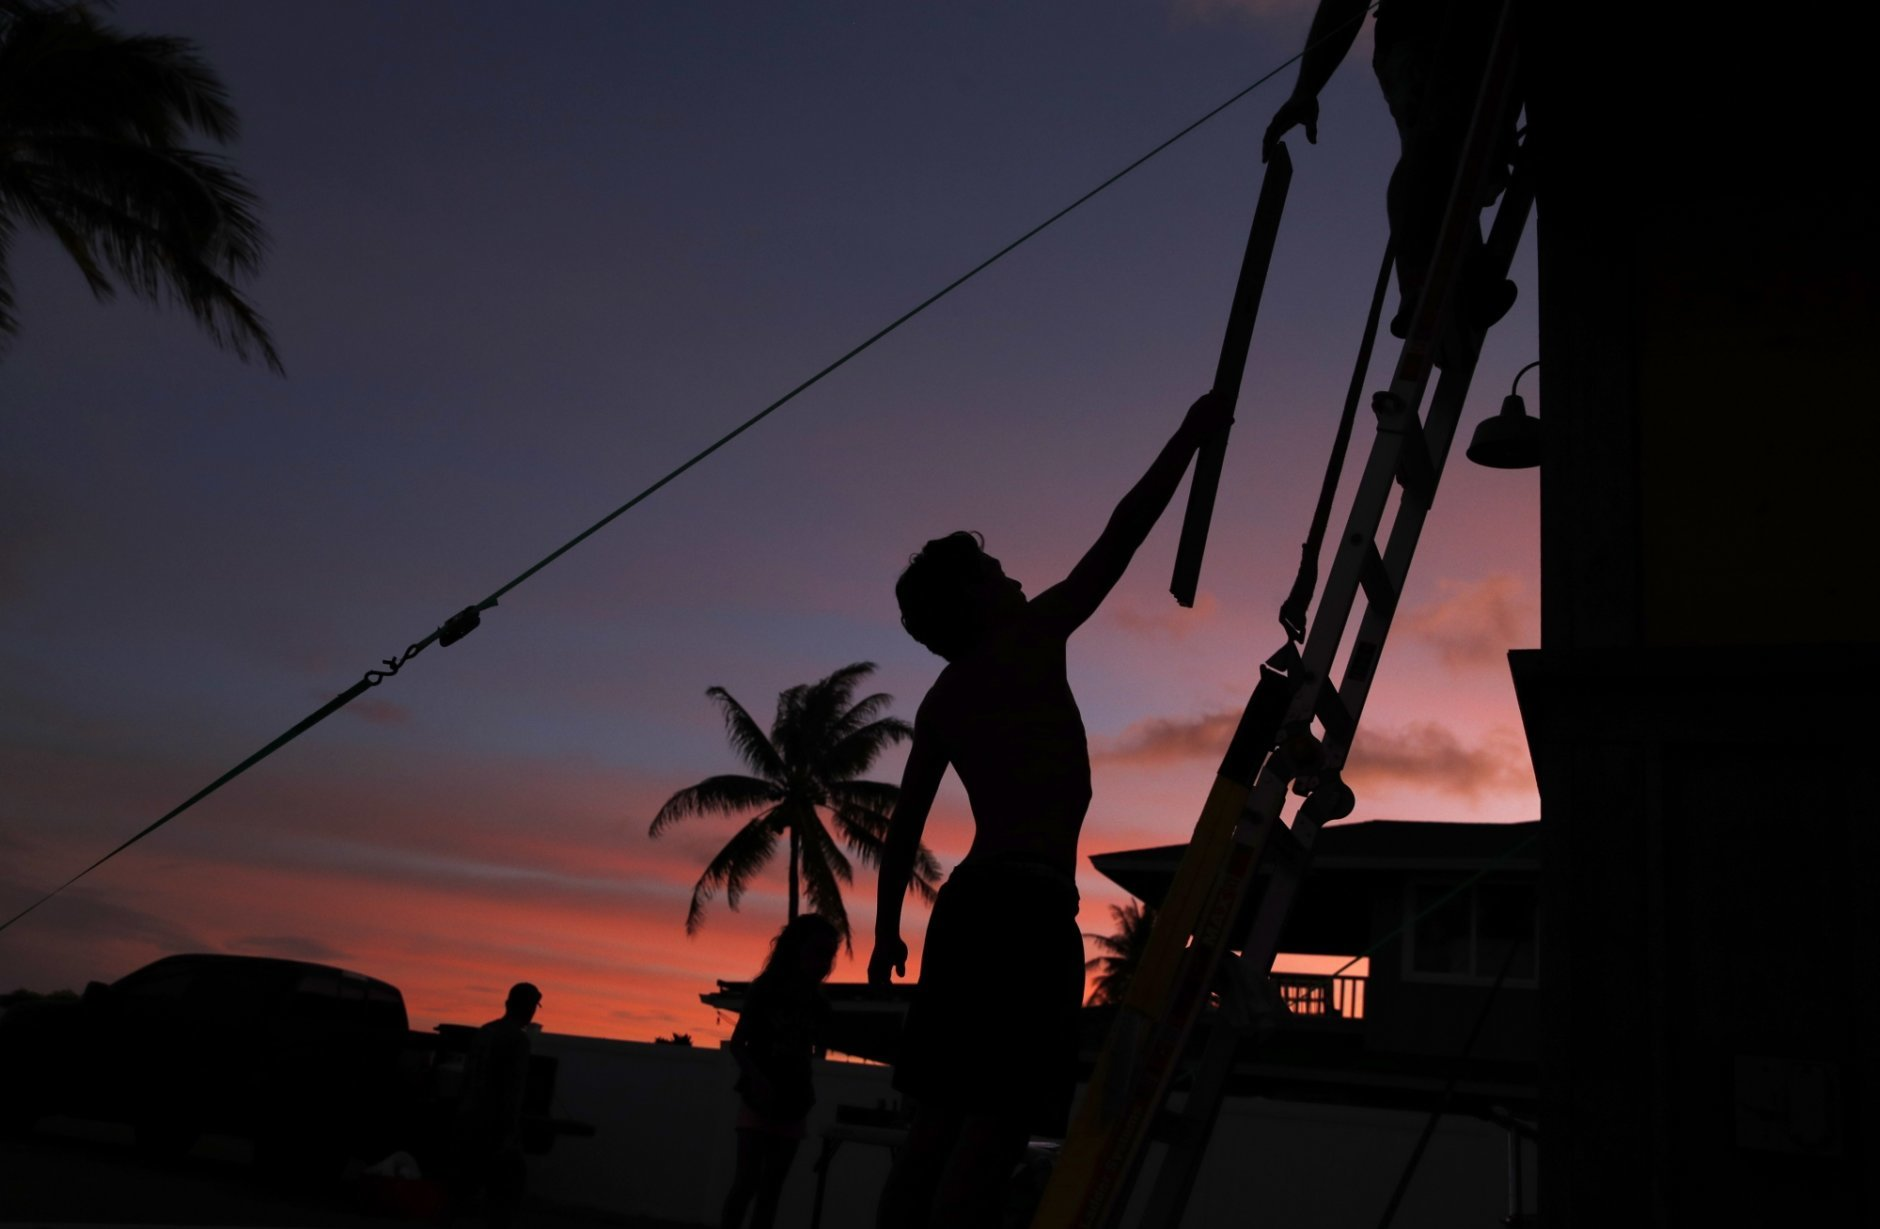 Kainalu Kitashima hands his father a piece of wood to help tie down their tiny home in preparation for Hurricane Lane, Wednesday, Aug. 22, 2018, along Ewa Beach in Honolulu. As emergency shelters opened, rain began to pour and cellphone alerts went out, the approaching hurricane started to feel real for Hawaii residents.(AP Photo/John Locher)